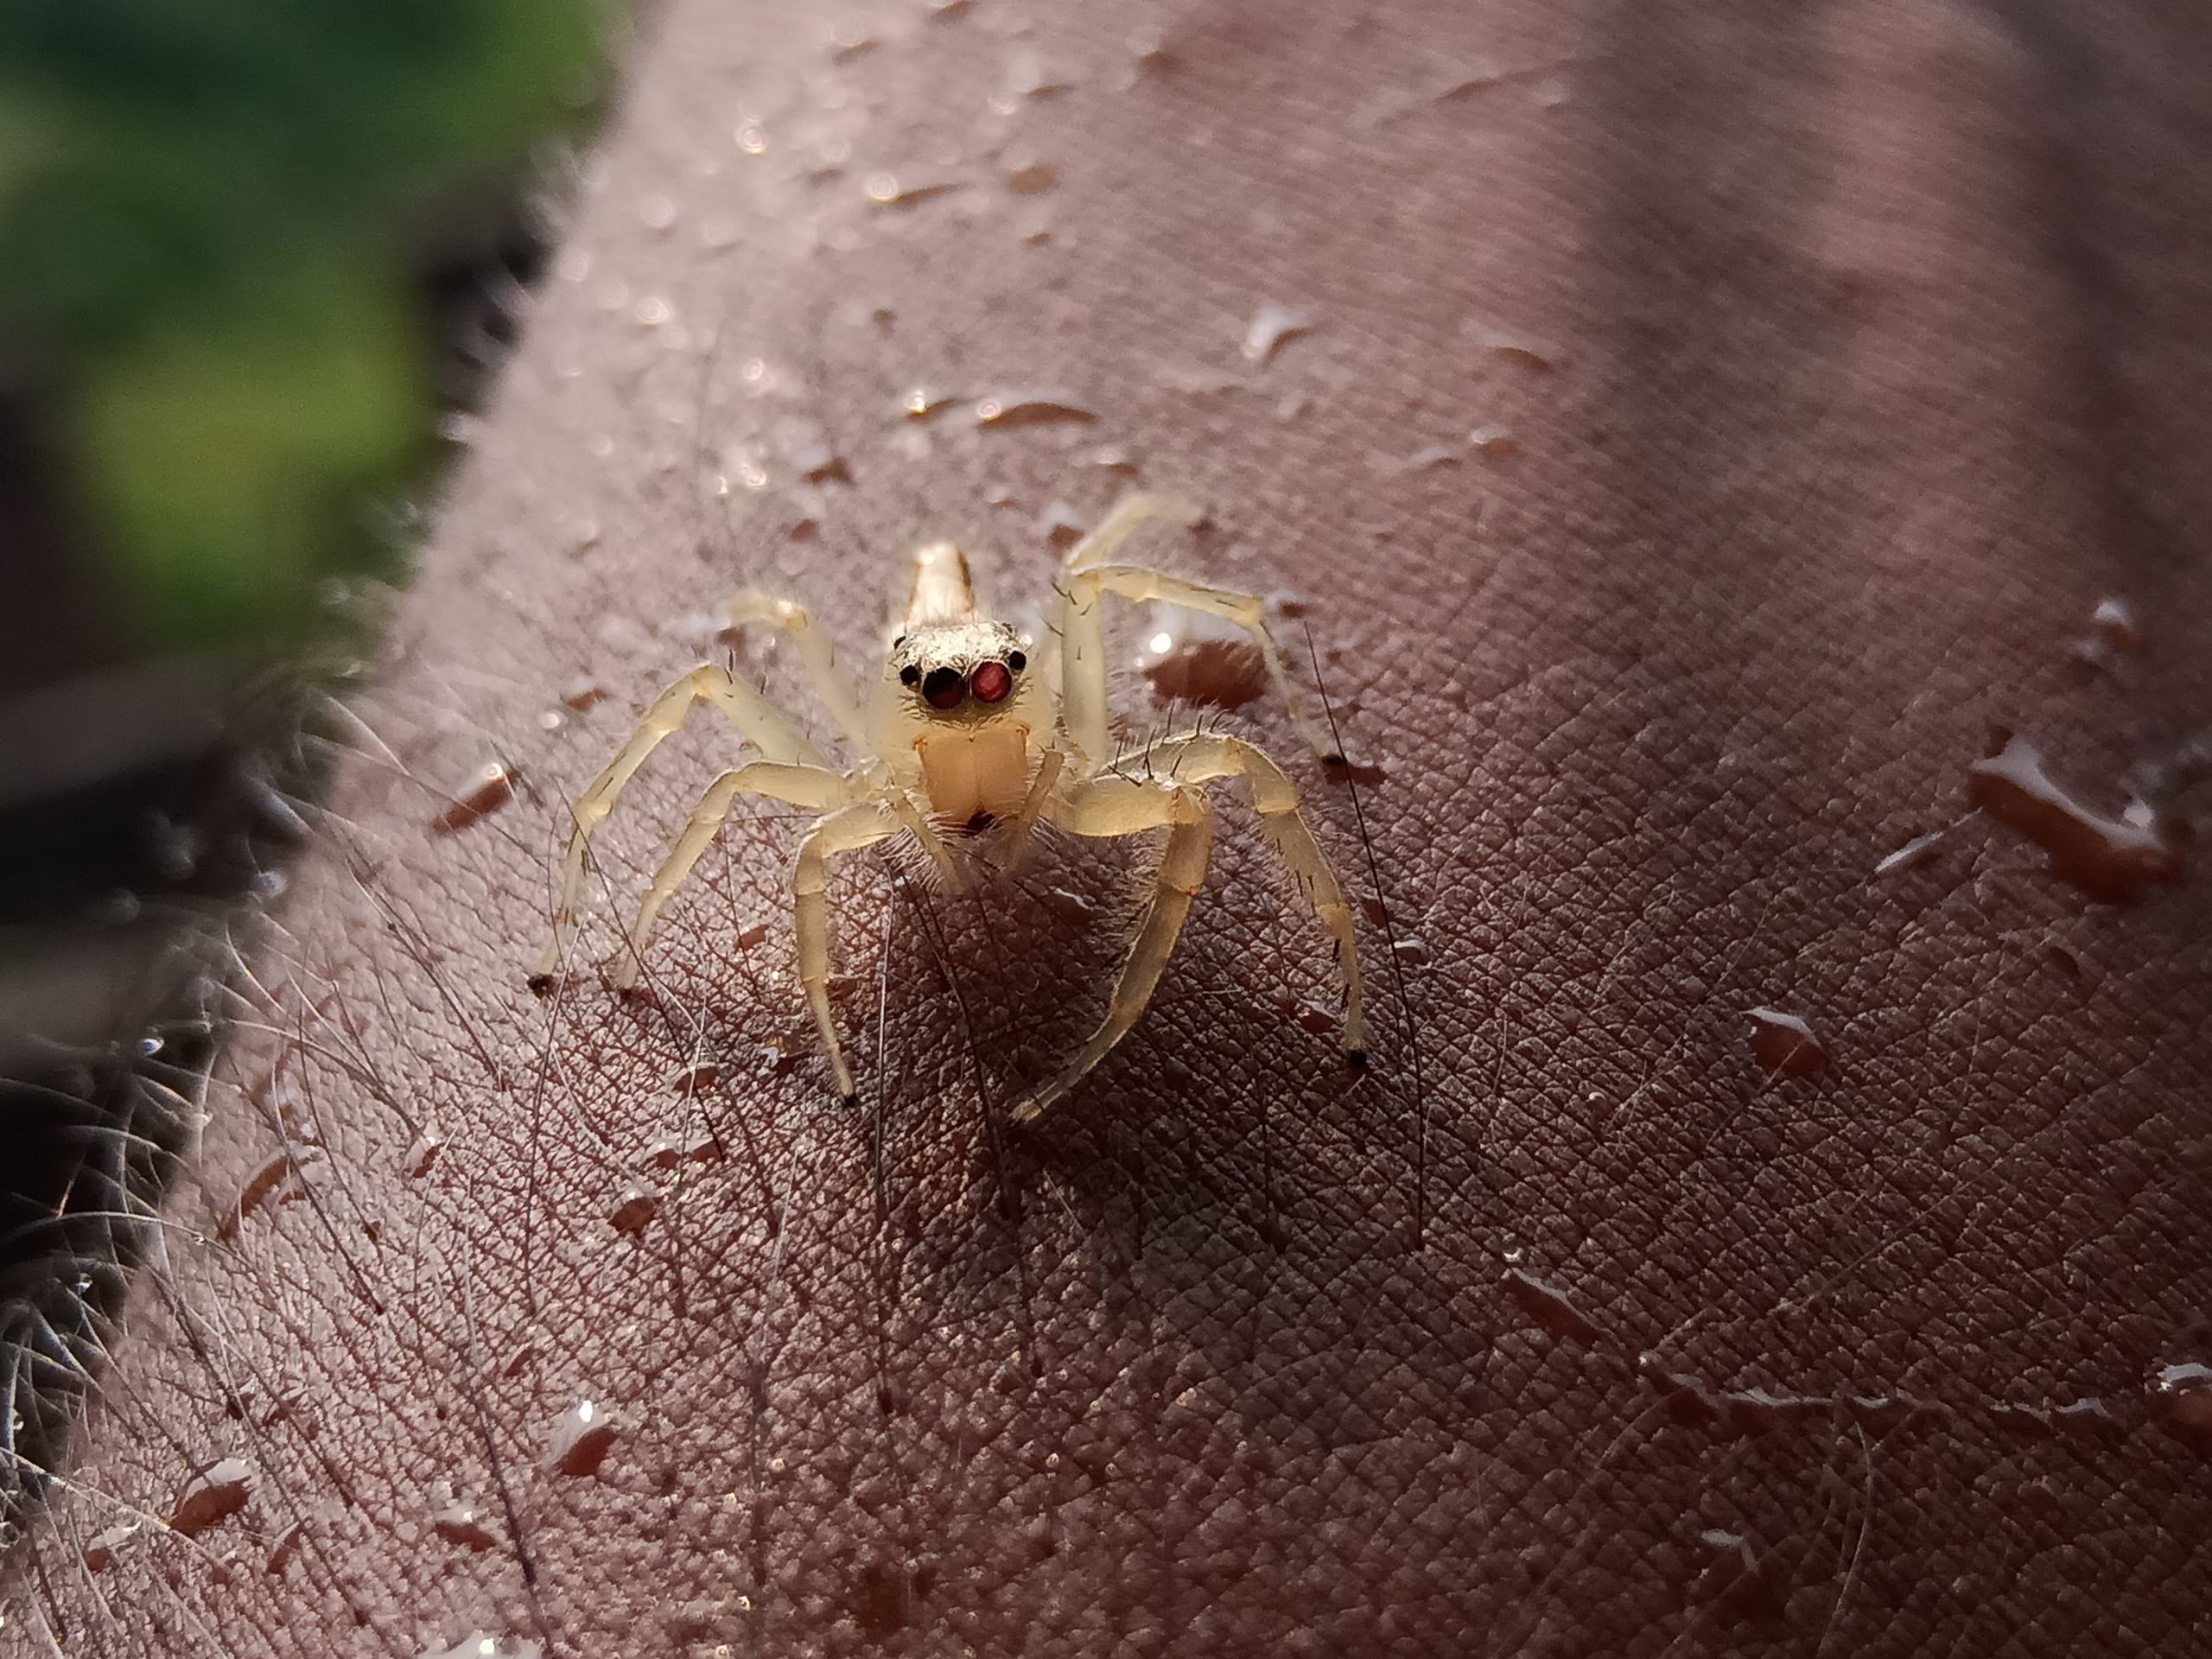 A spider on human skin